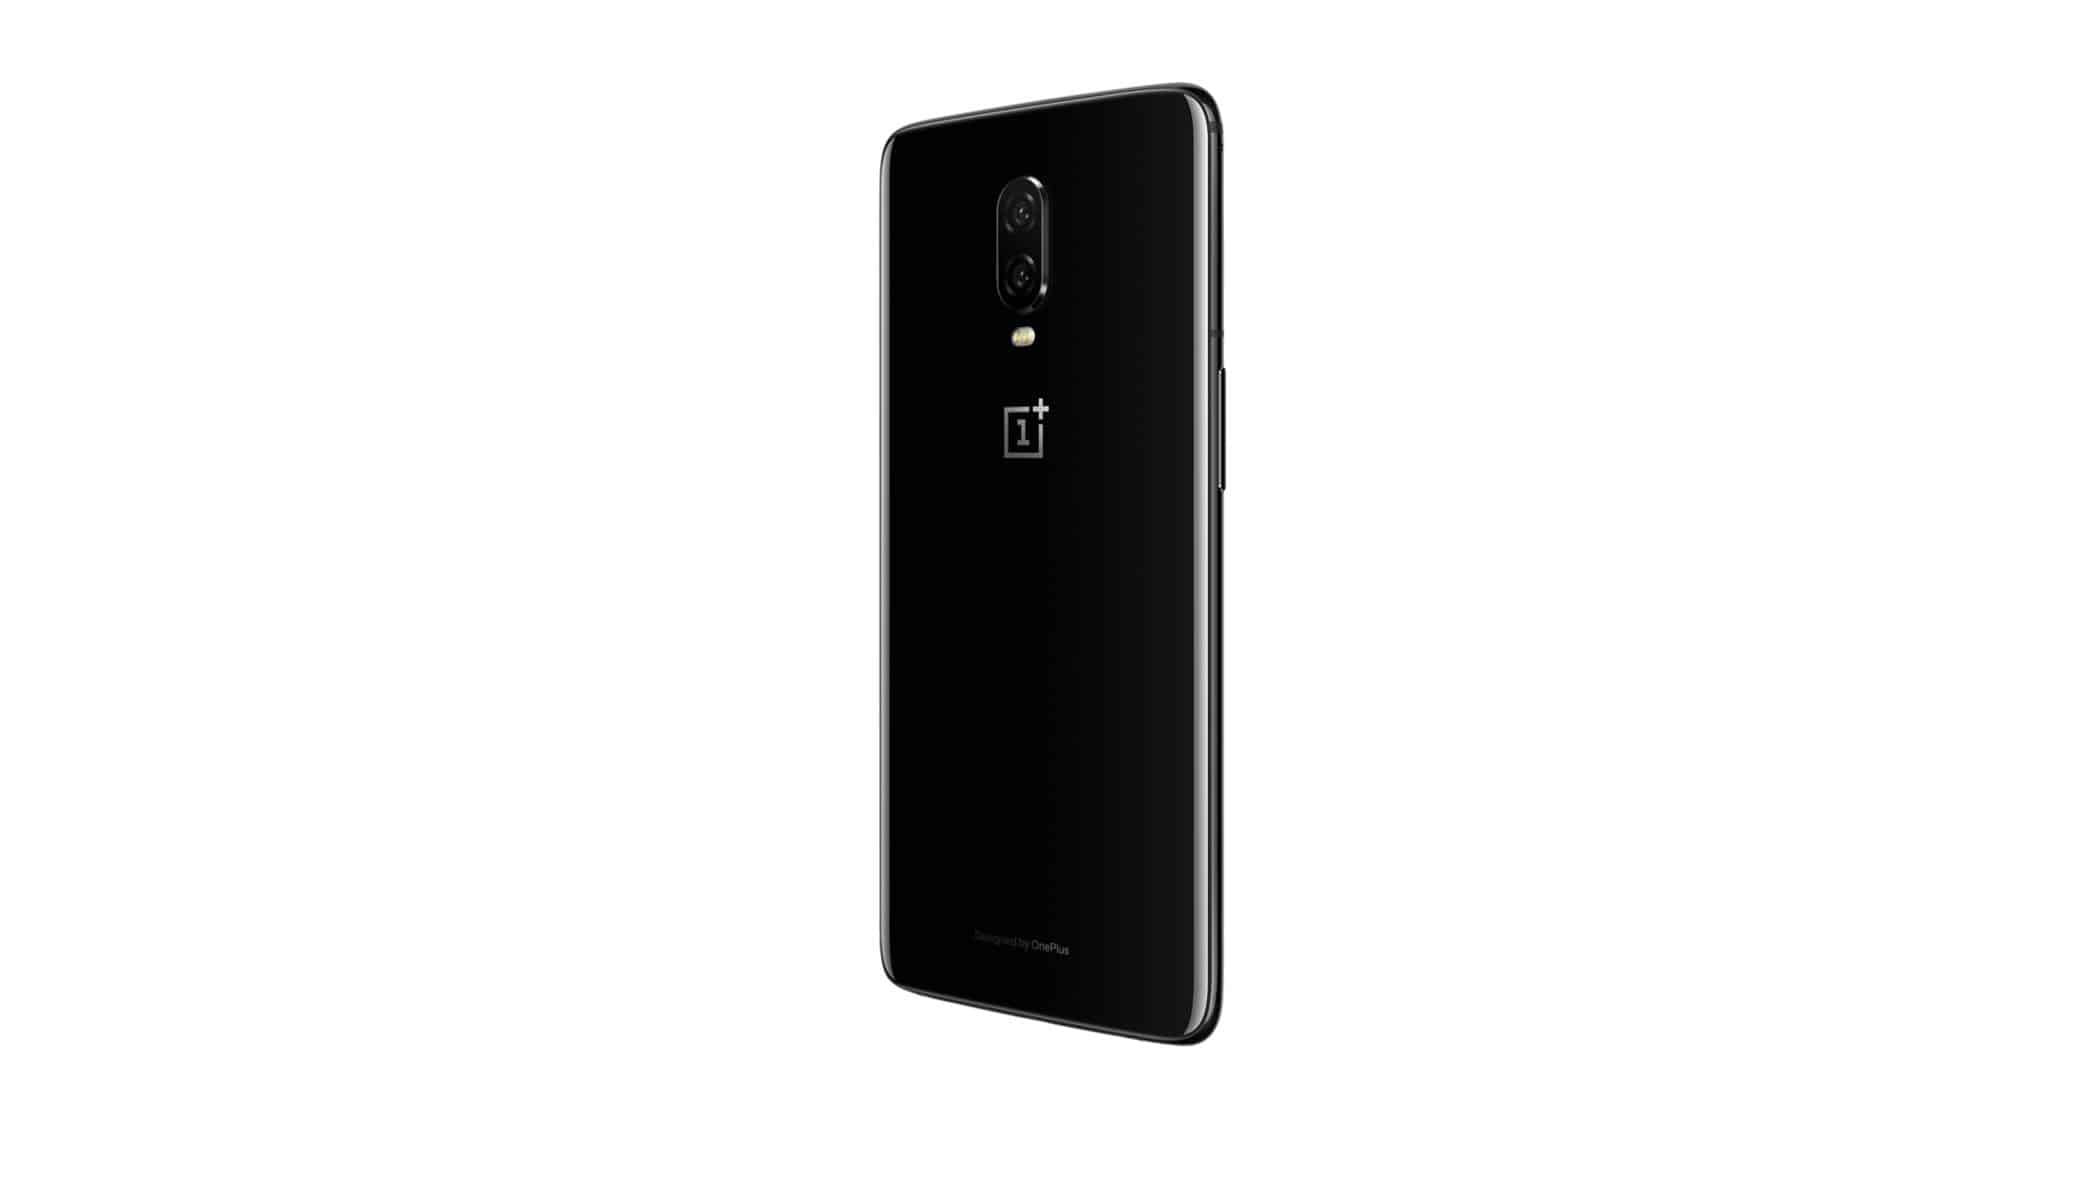 OnePlus 6T Official Product Render 6